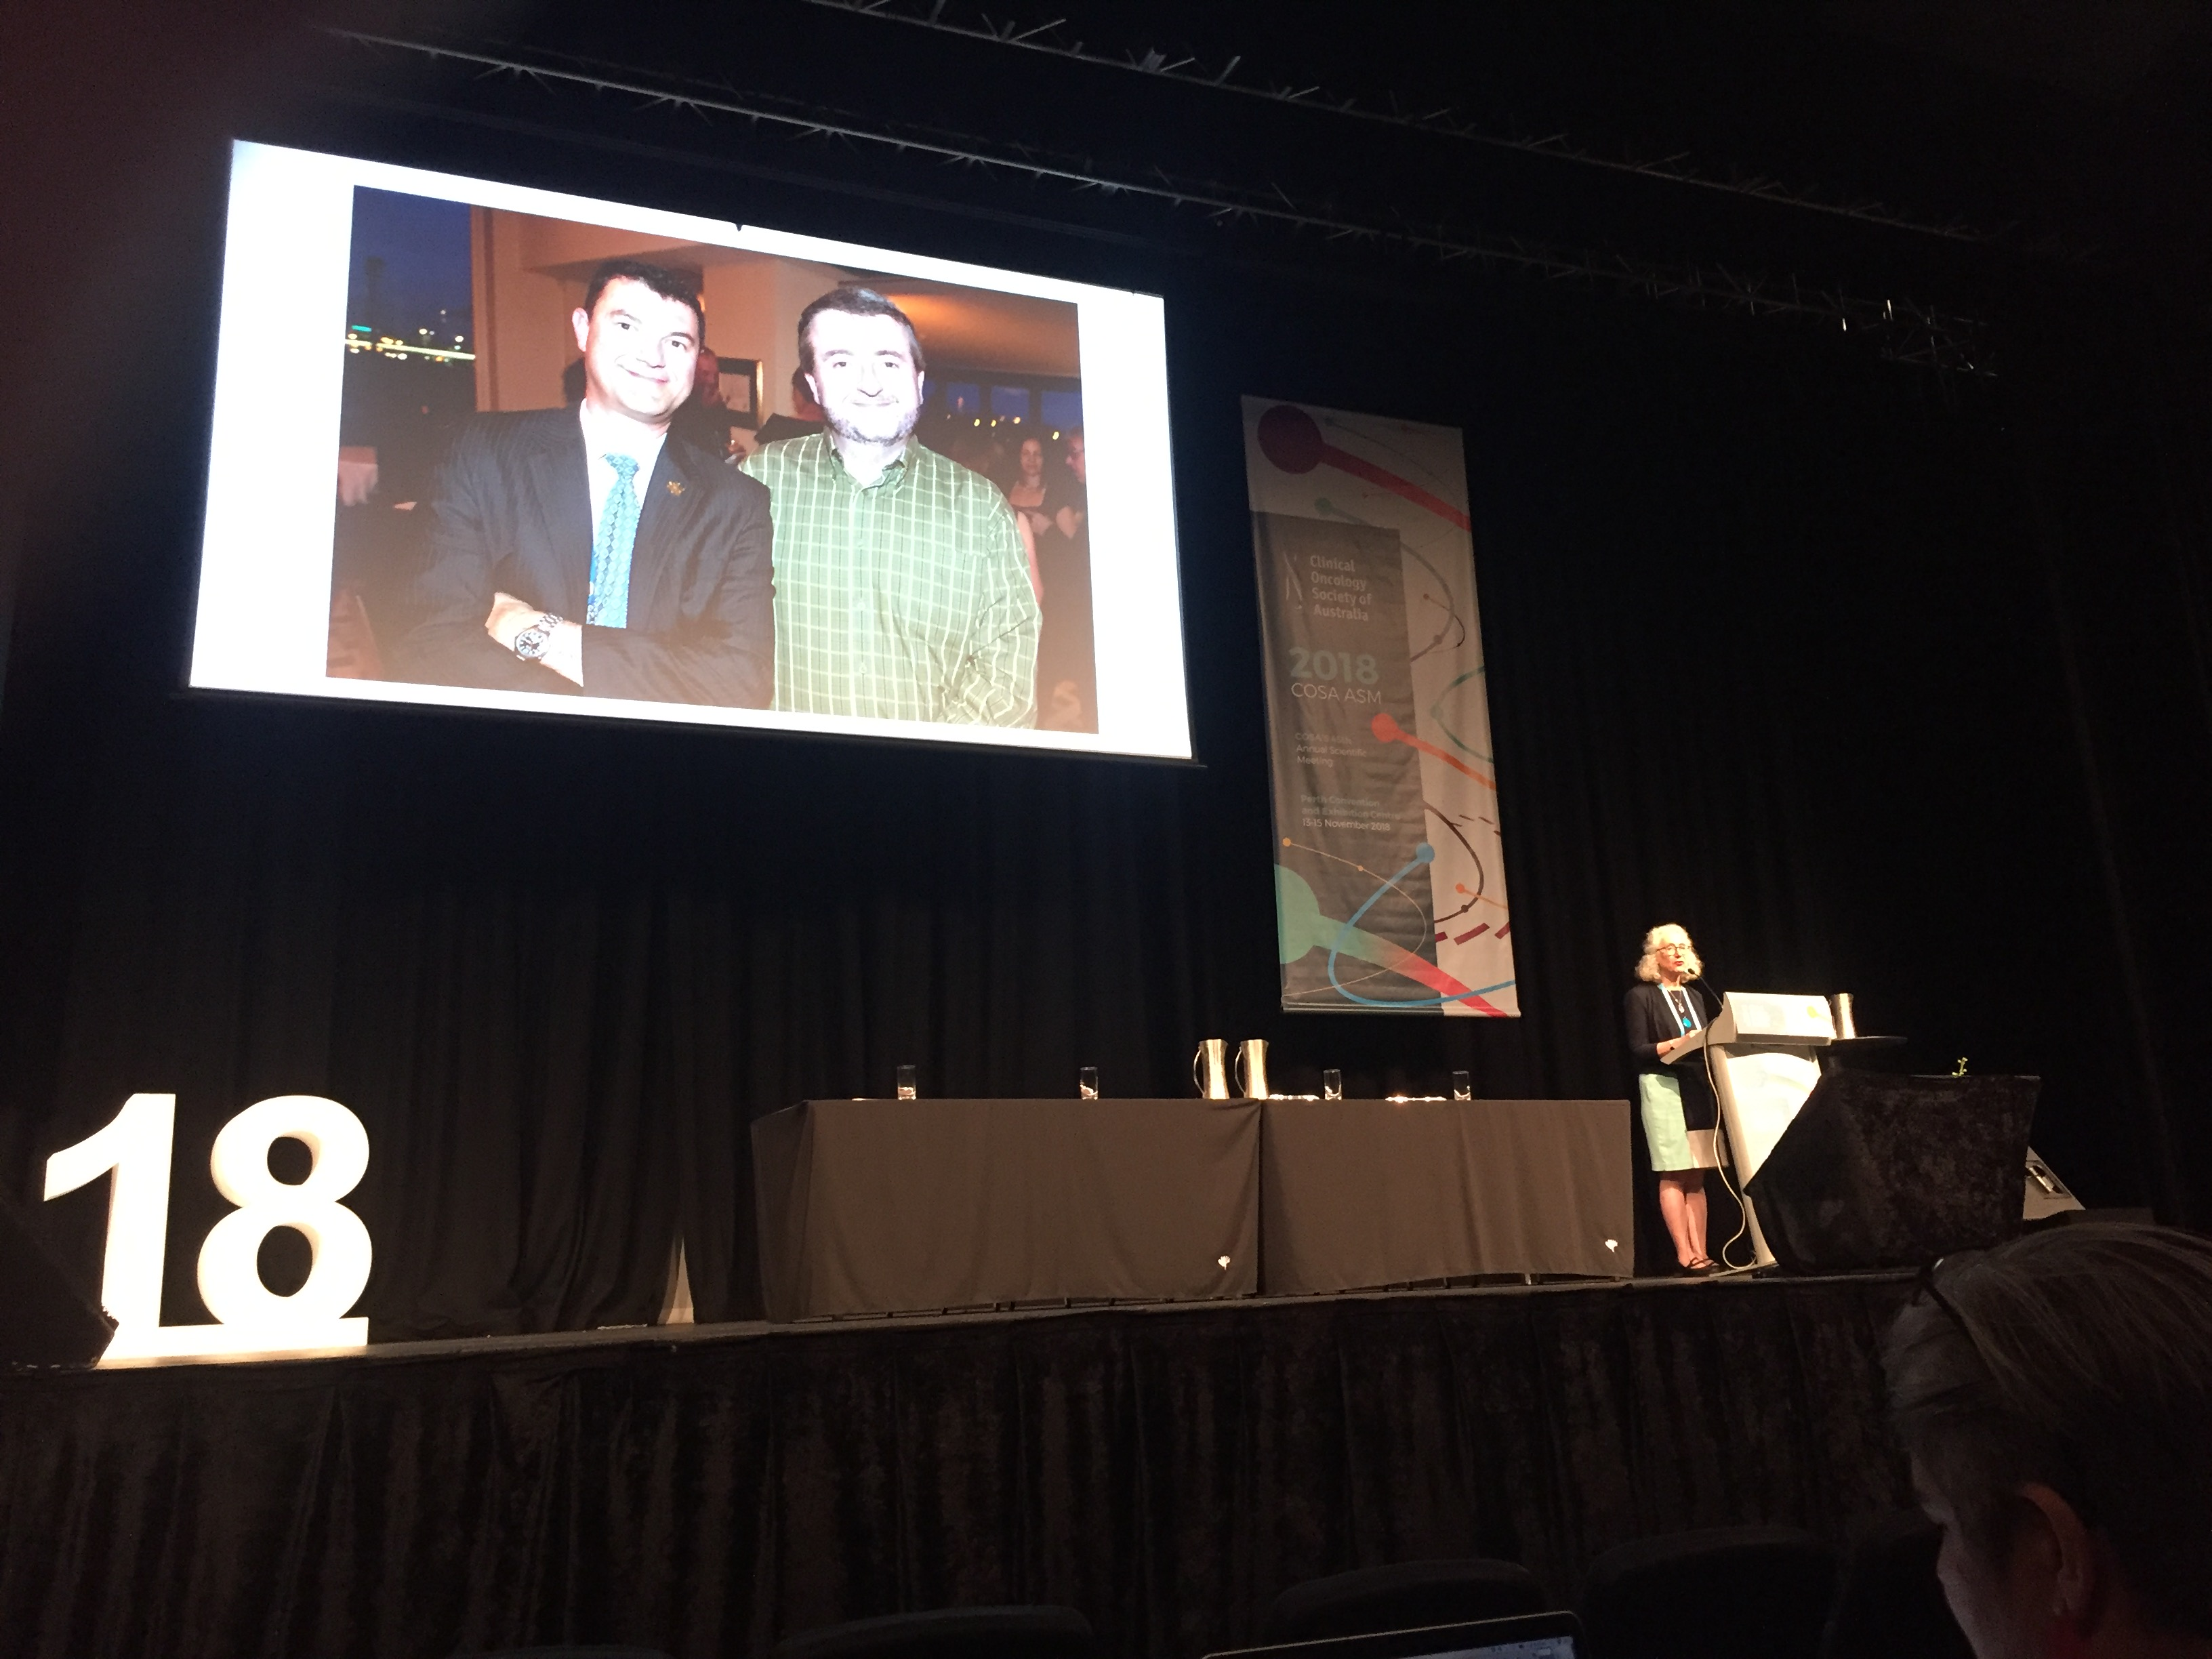 COSA President Phyllis Butow presenting a tribute on stage at the COSA 2018 opening ceremony at Perth Convention and Exhibition Centre